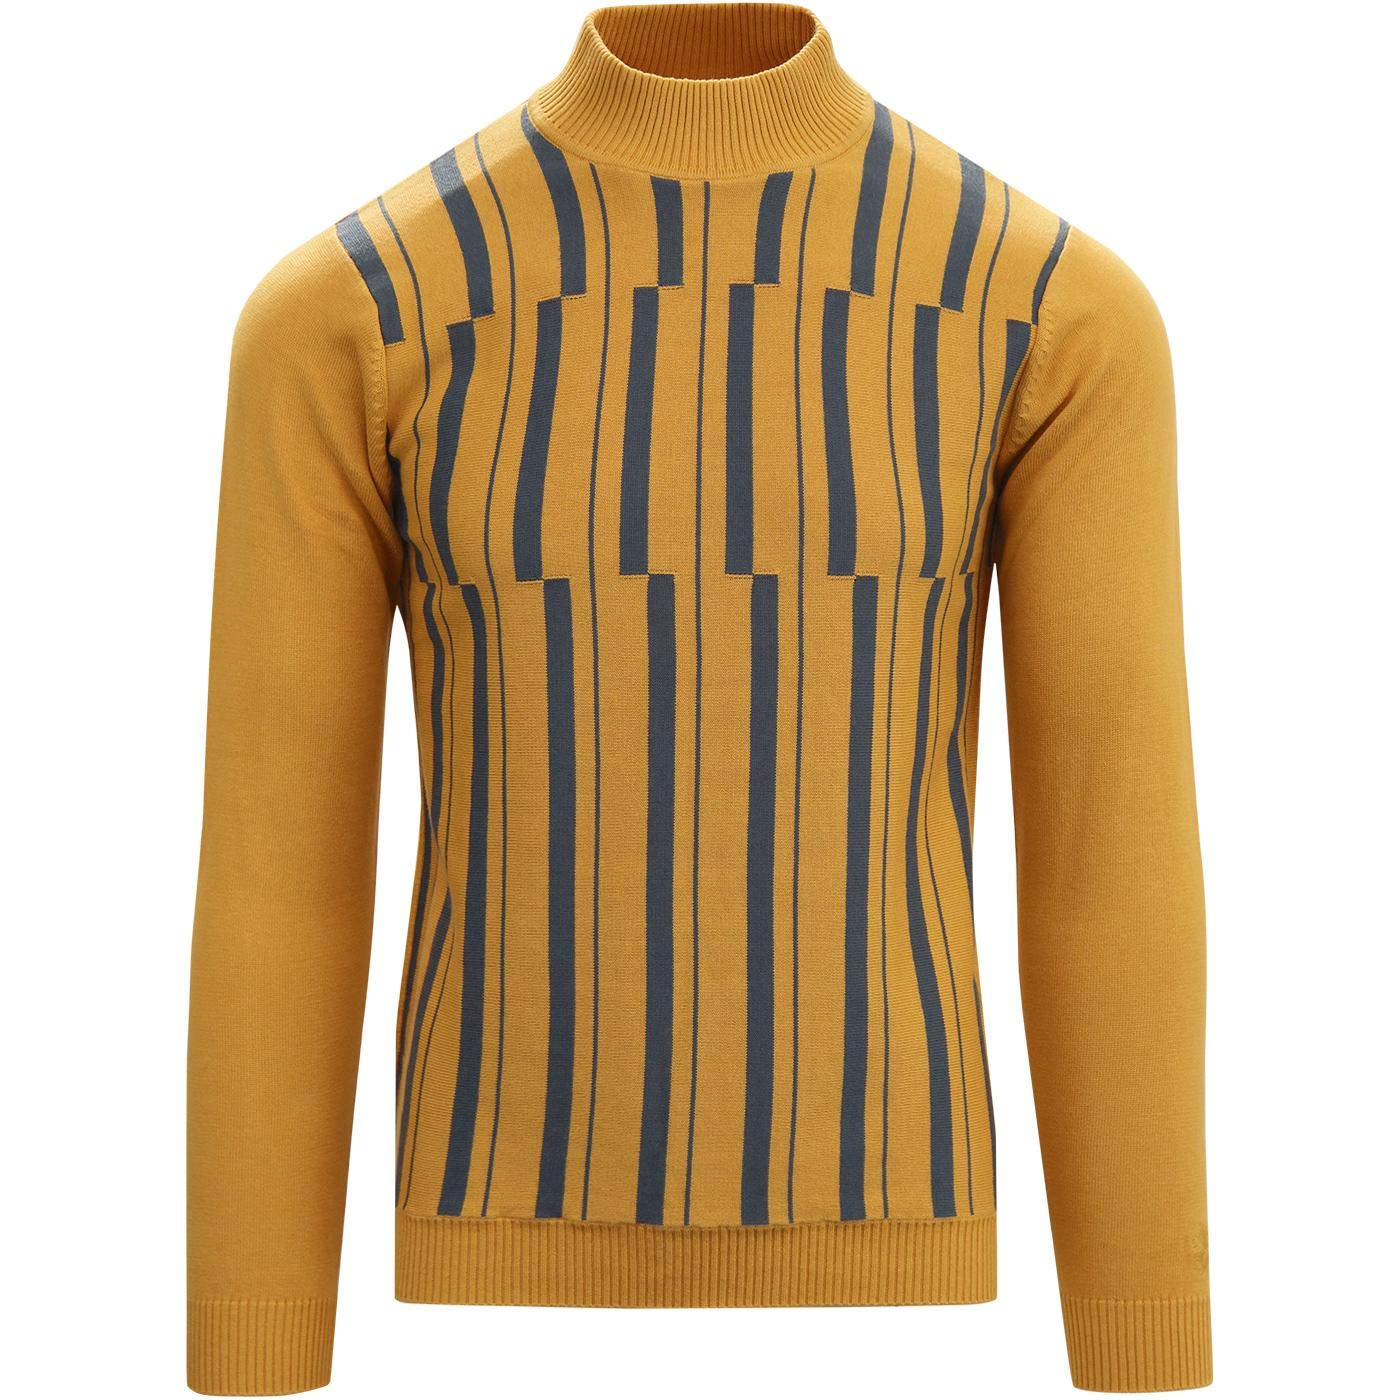 1960s – 70s Mens Shirts- Disco Shirts, Hippie Shirts Madcap England Symphony Retro 60s 70s Mod Abstract Stripe Knitted Turtleneck (Mock Turtle) Jumper £39.99 AT vintagedancer.com